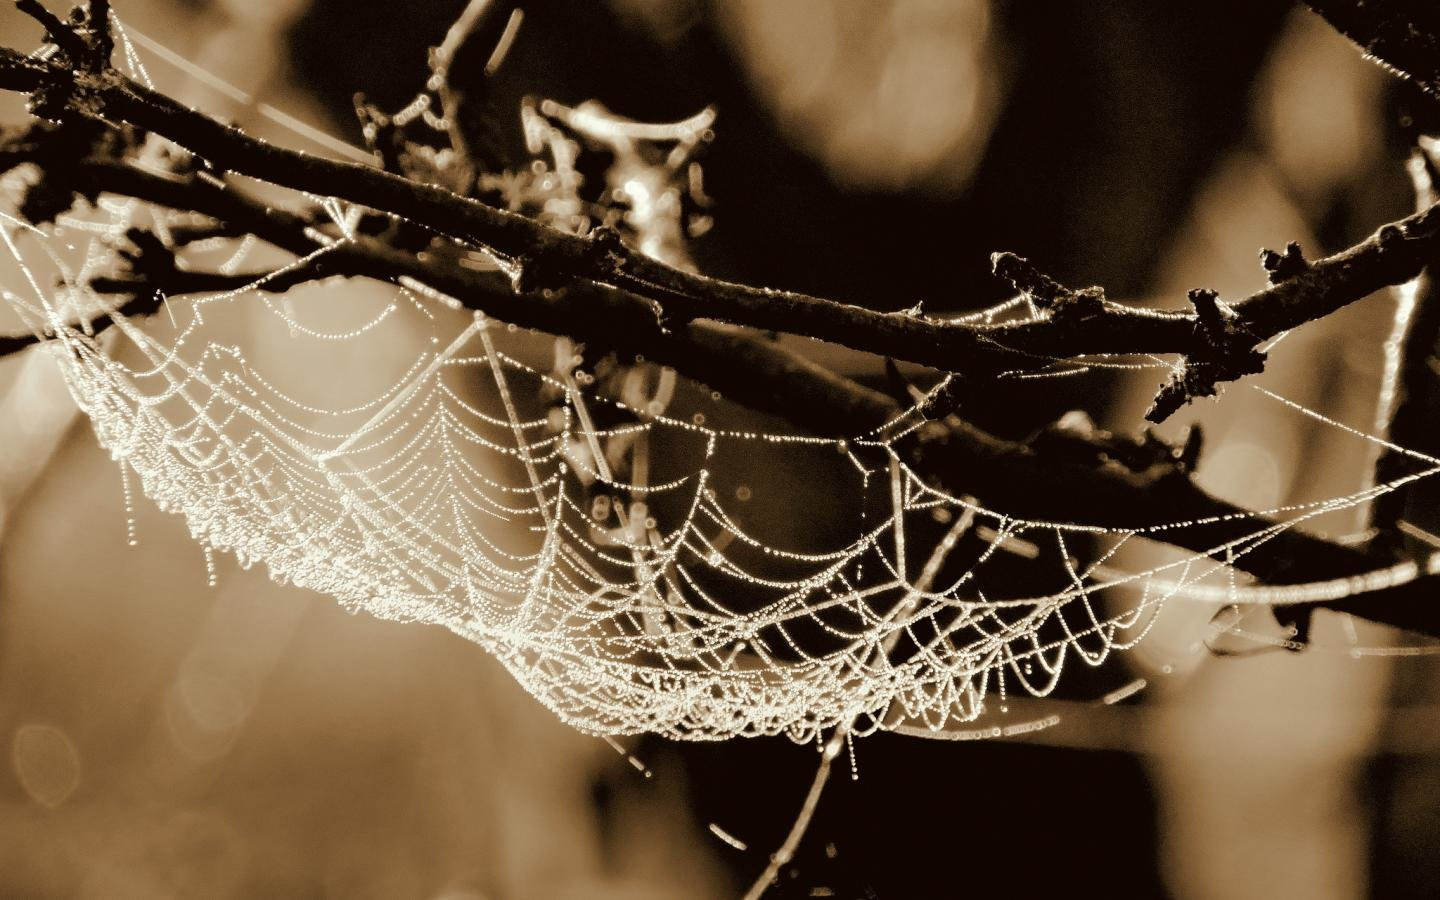 Awesome Spider Web free wallpaper ID:184796 for hd 1440x900 PC